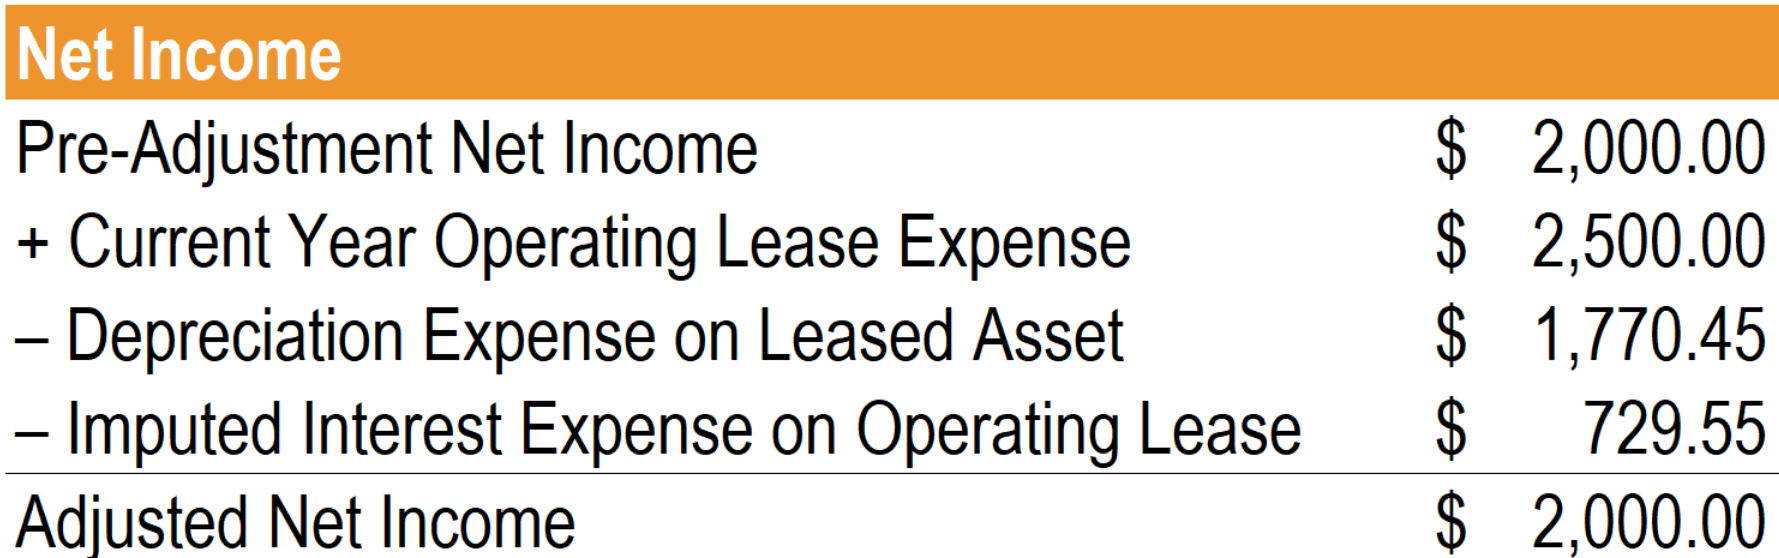 Operating Lease - Approximation Method Step 4 - Net Income